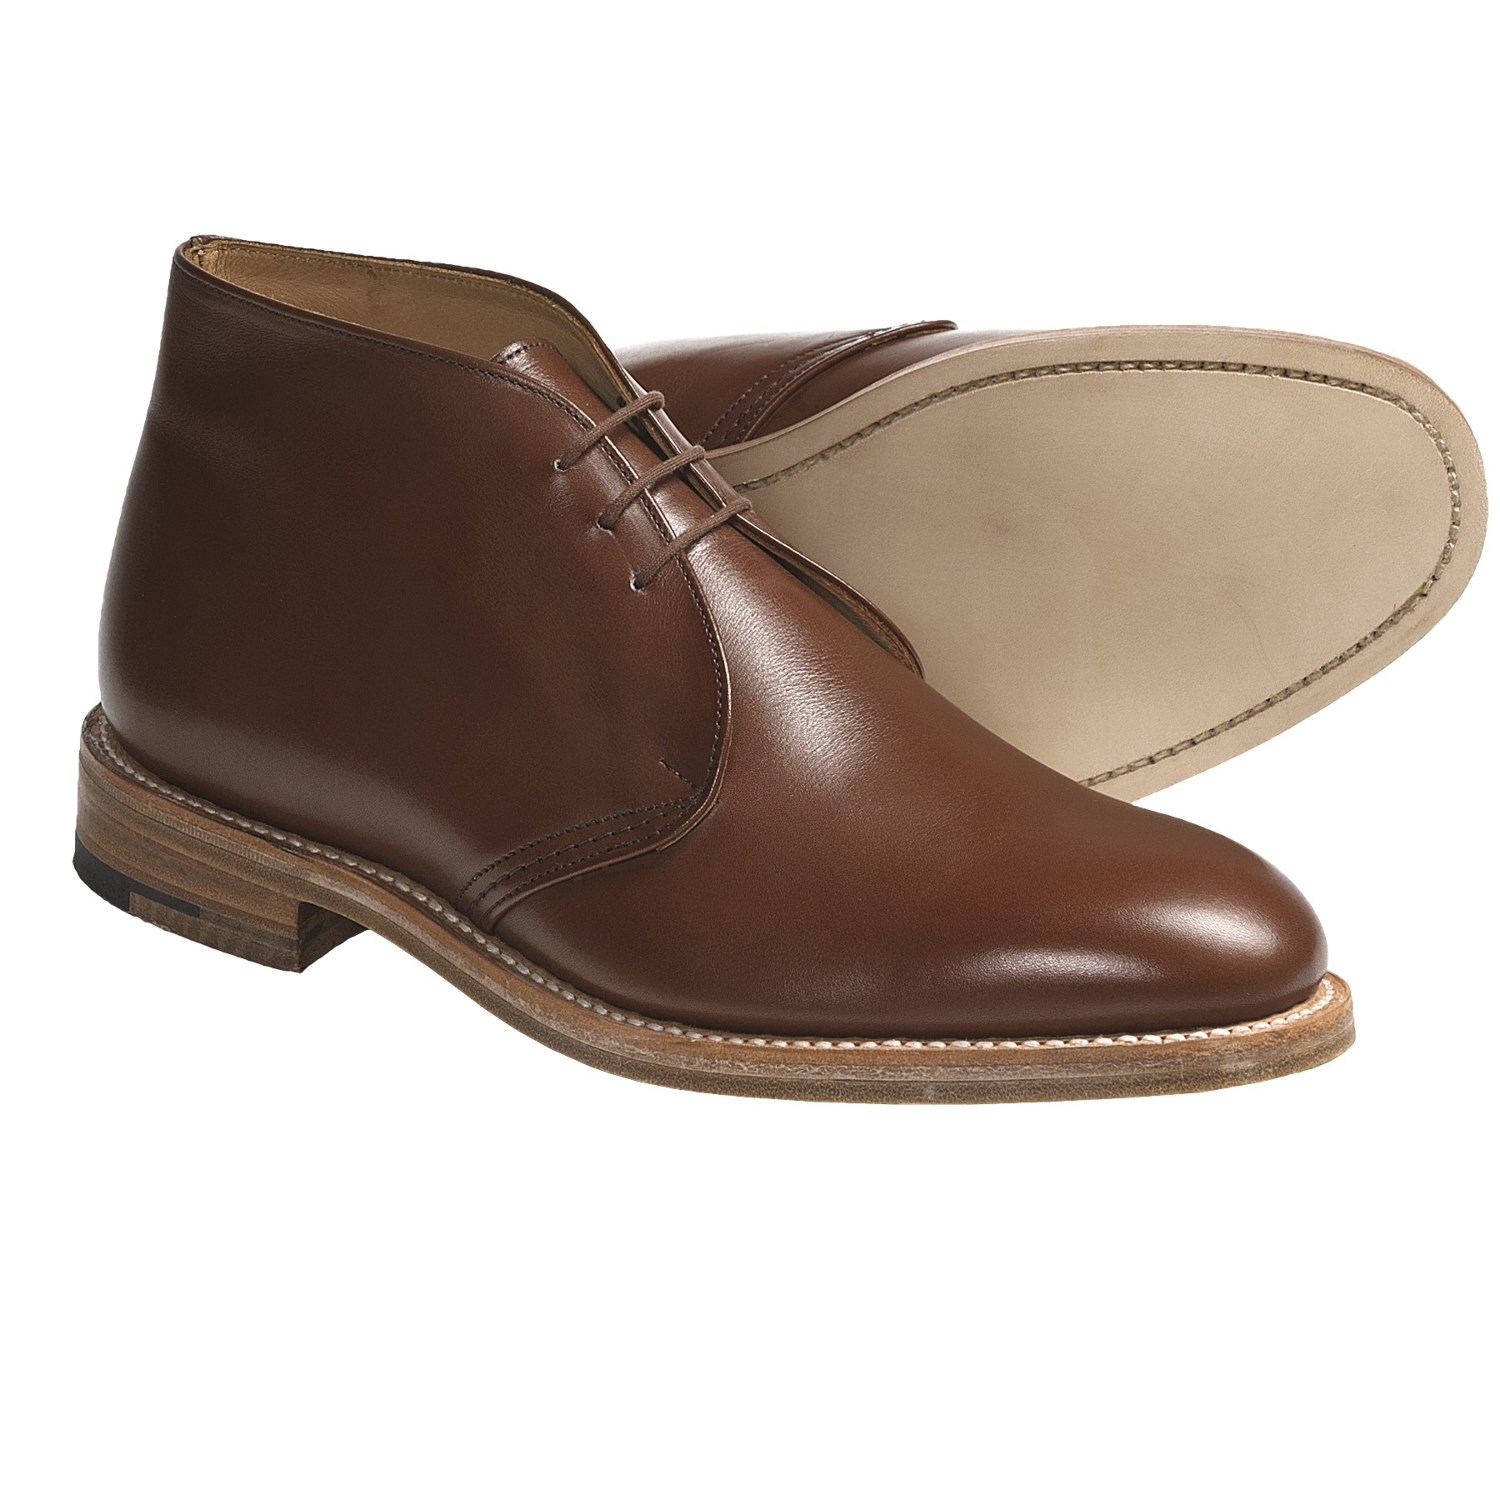 leather chukka boots for boots image